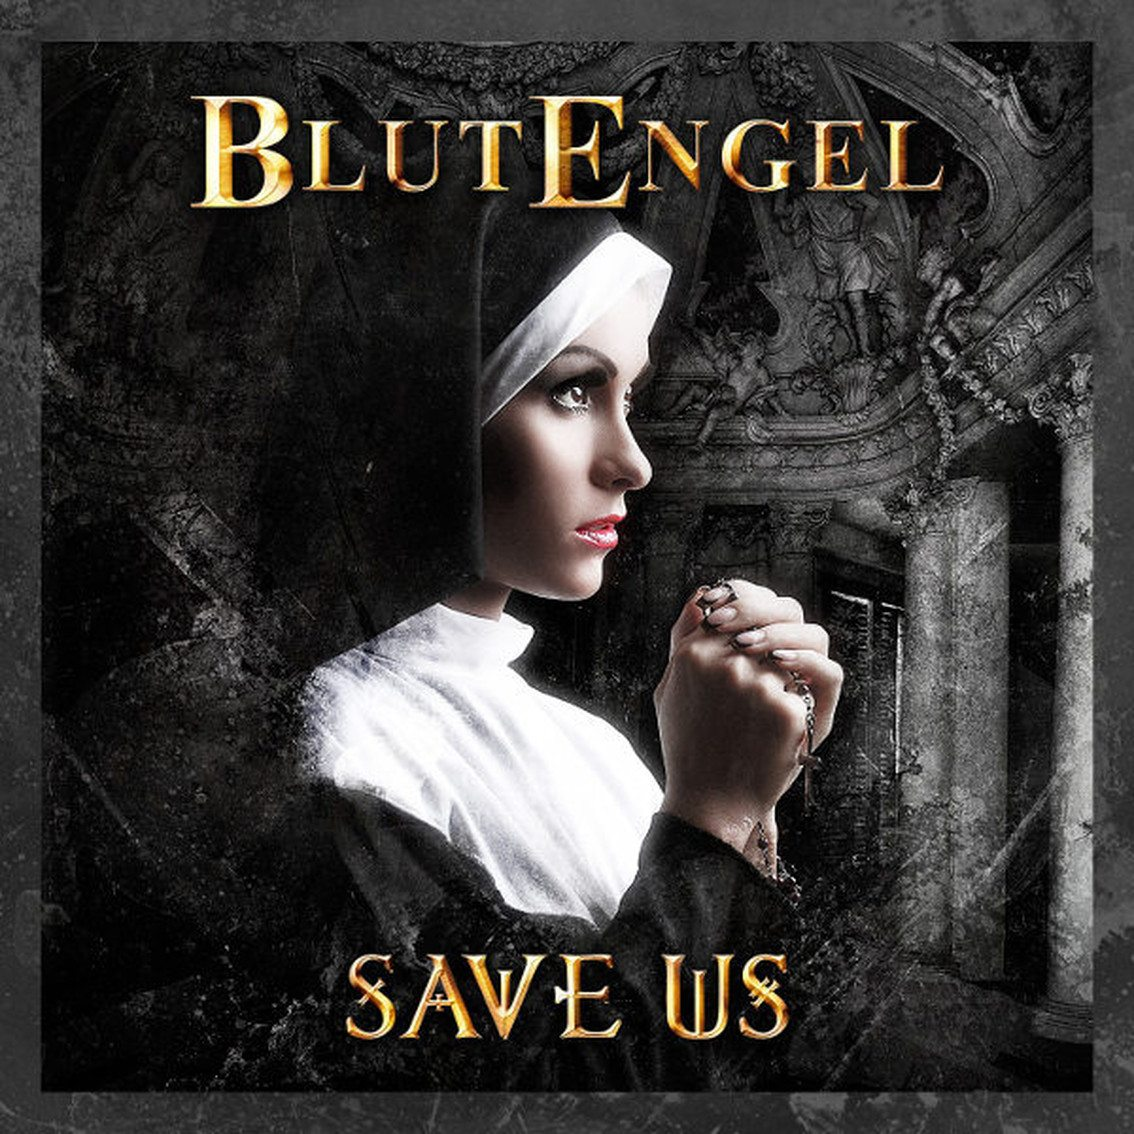 Blutengel forced to rename'Open' album to'Save Us' due to legal dispute